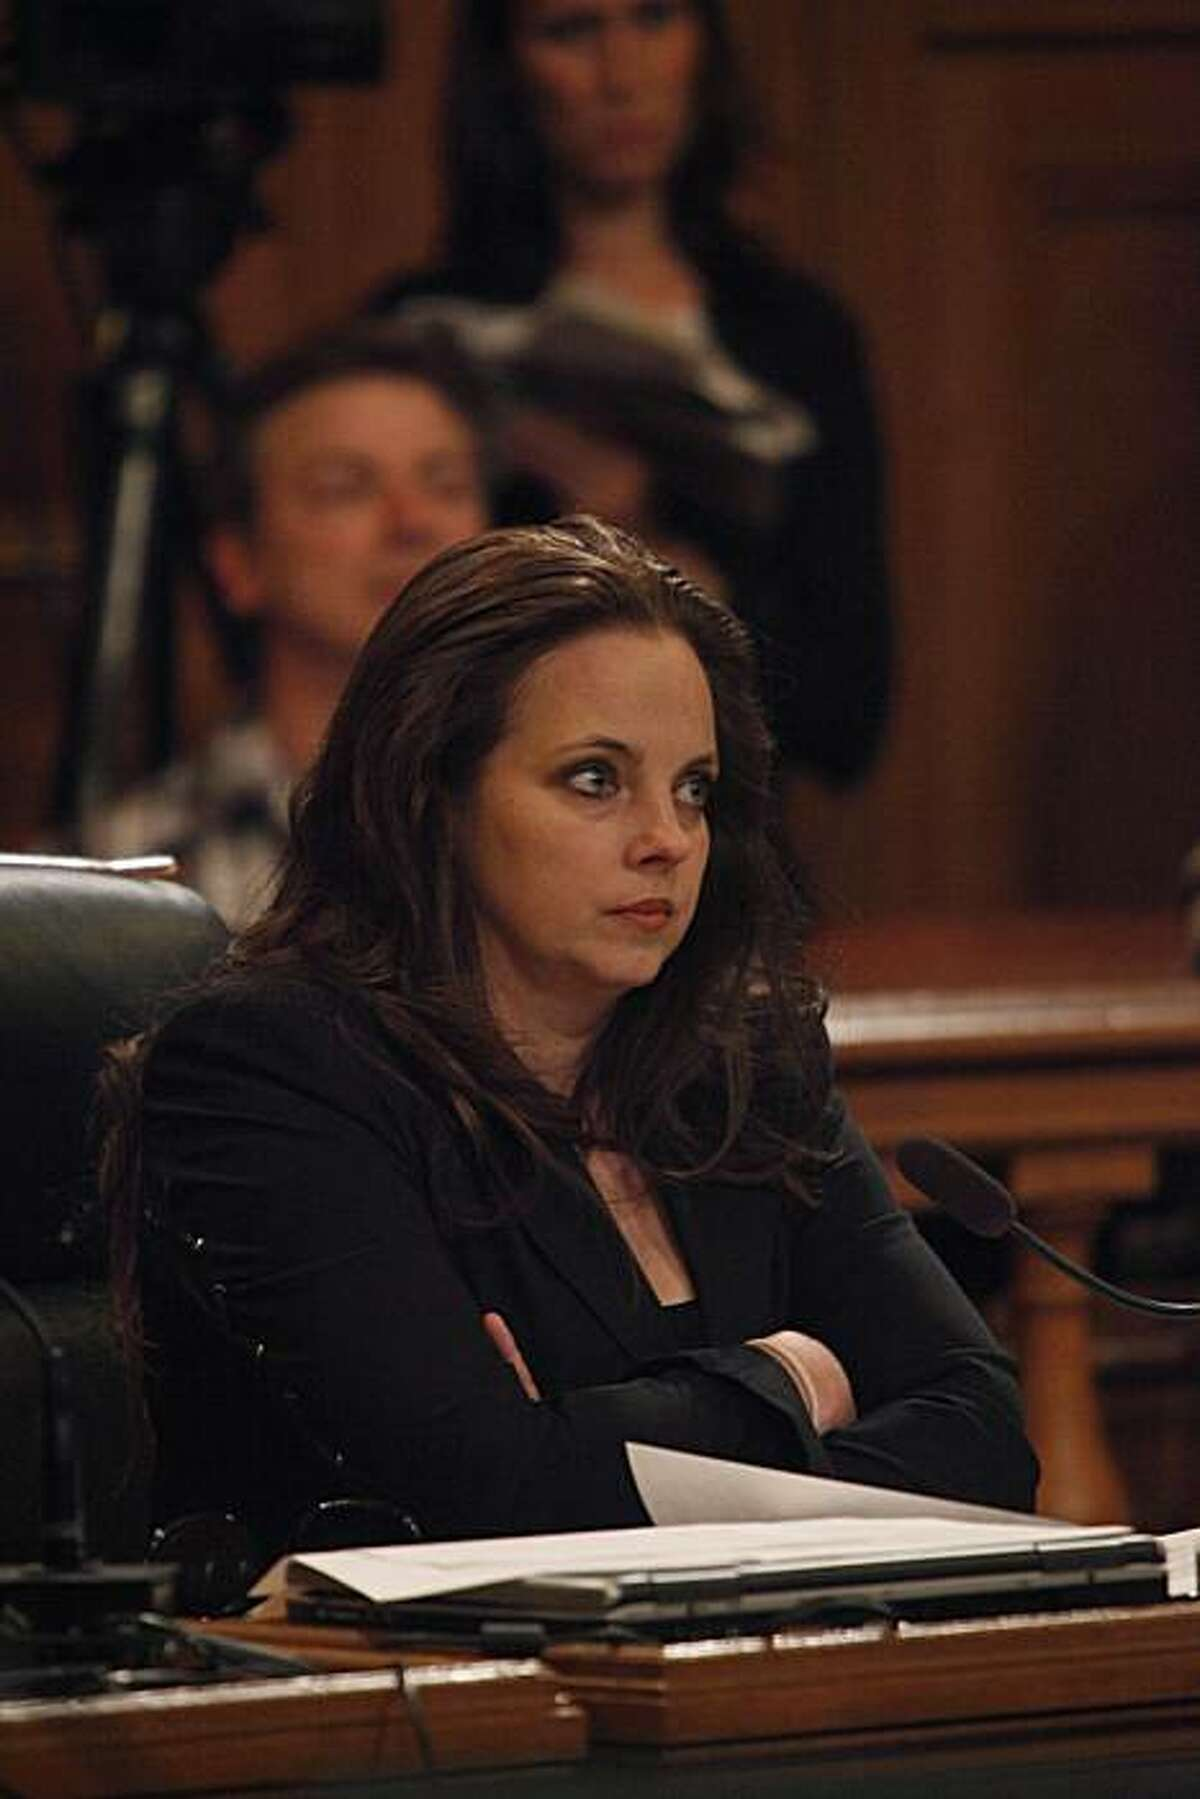 Supervisor Michela Alioto-Pier listens during a San Francisco Board of Supervisors meeting at City Hall in San Francisco, Calif. on Tuesday May 4, 2010.